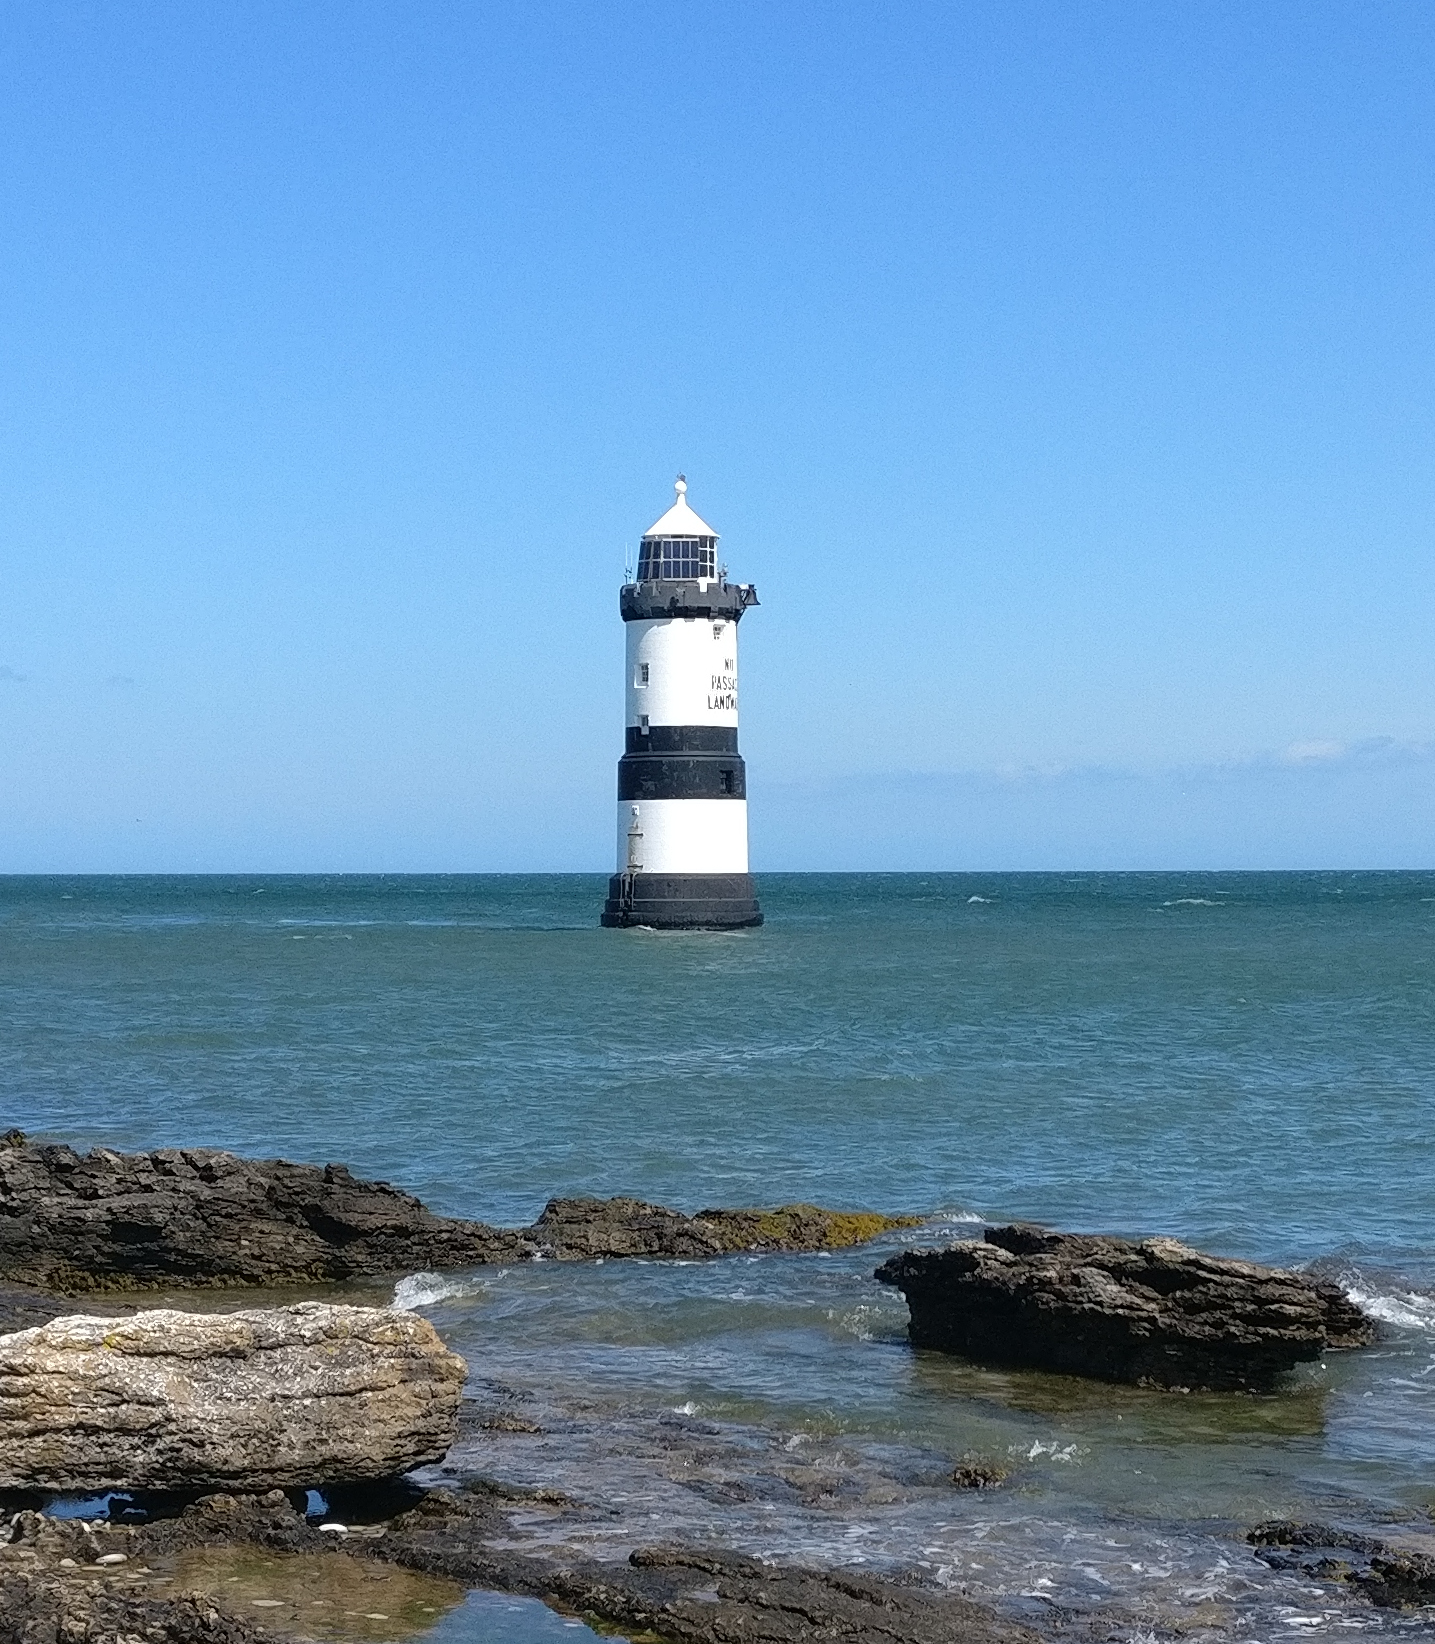 Light house near Moelfre, North Wales. © 2019 by René Pfeiffer.